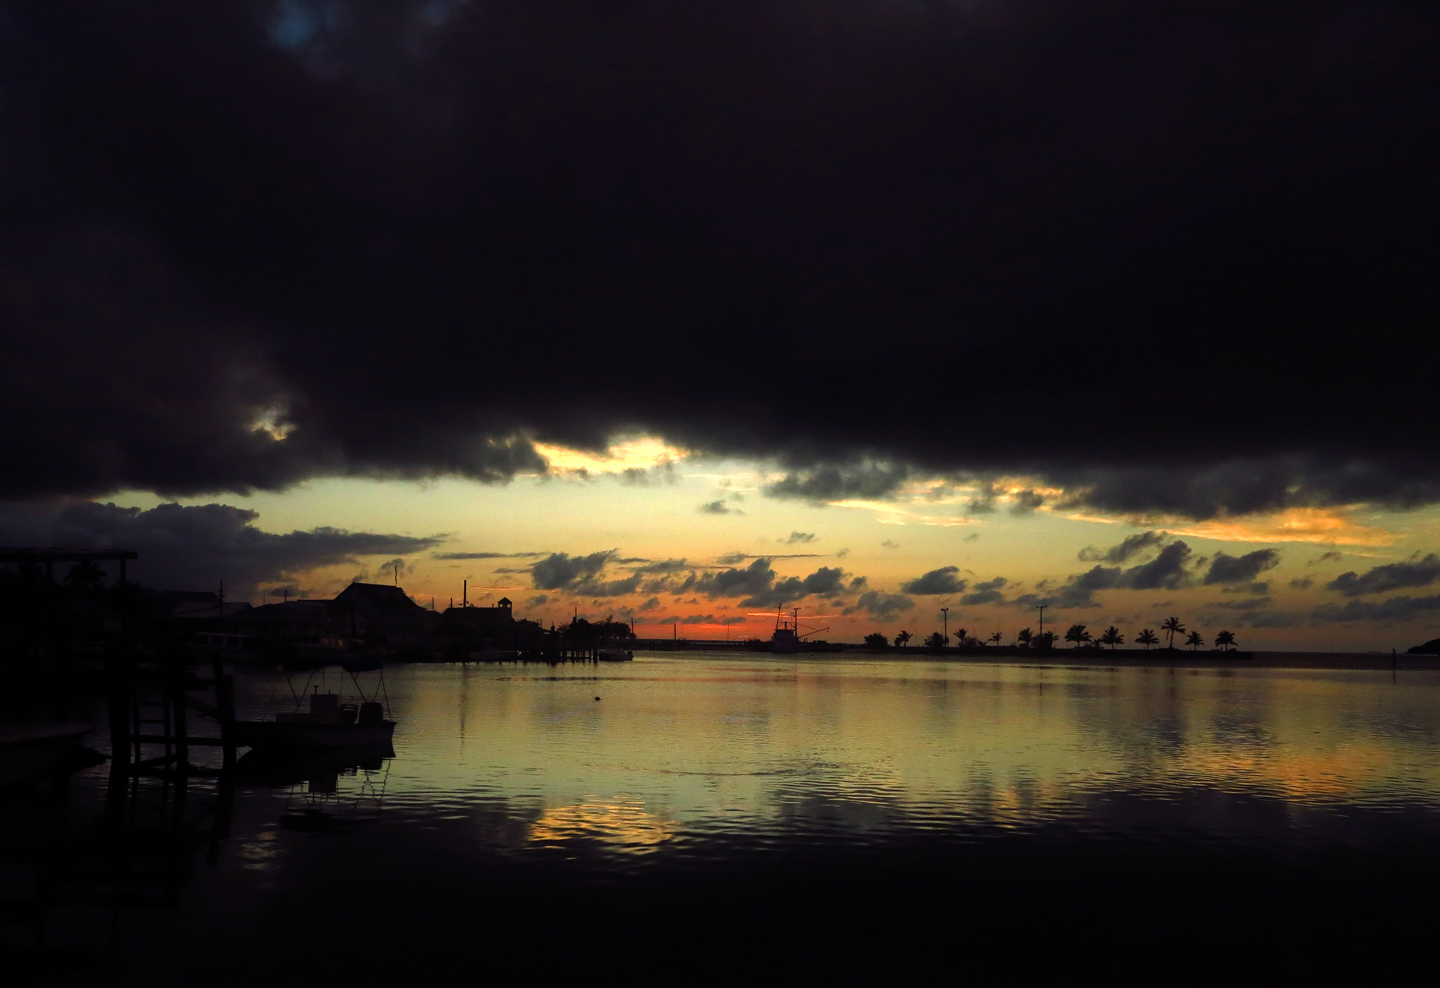 Ominous sunset over Settlement Point, Green Turtle Cay, Bahamas.